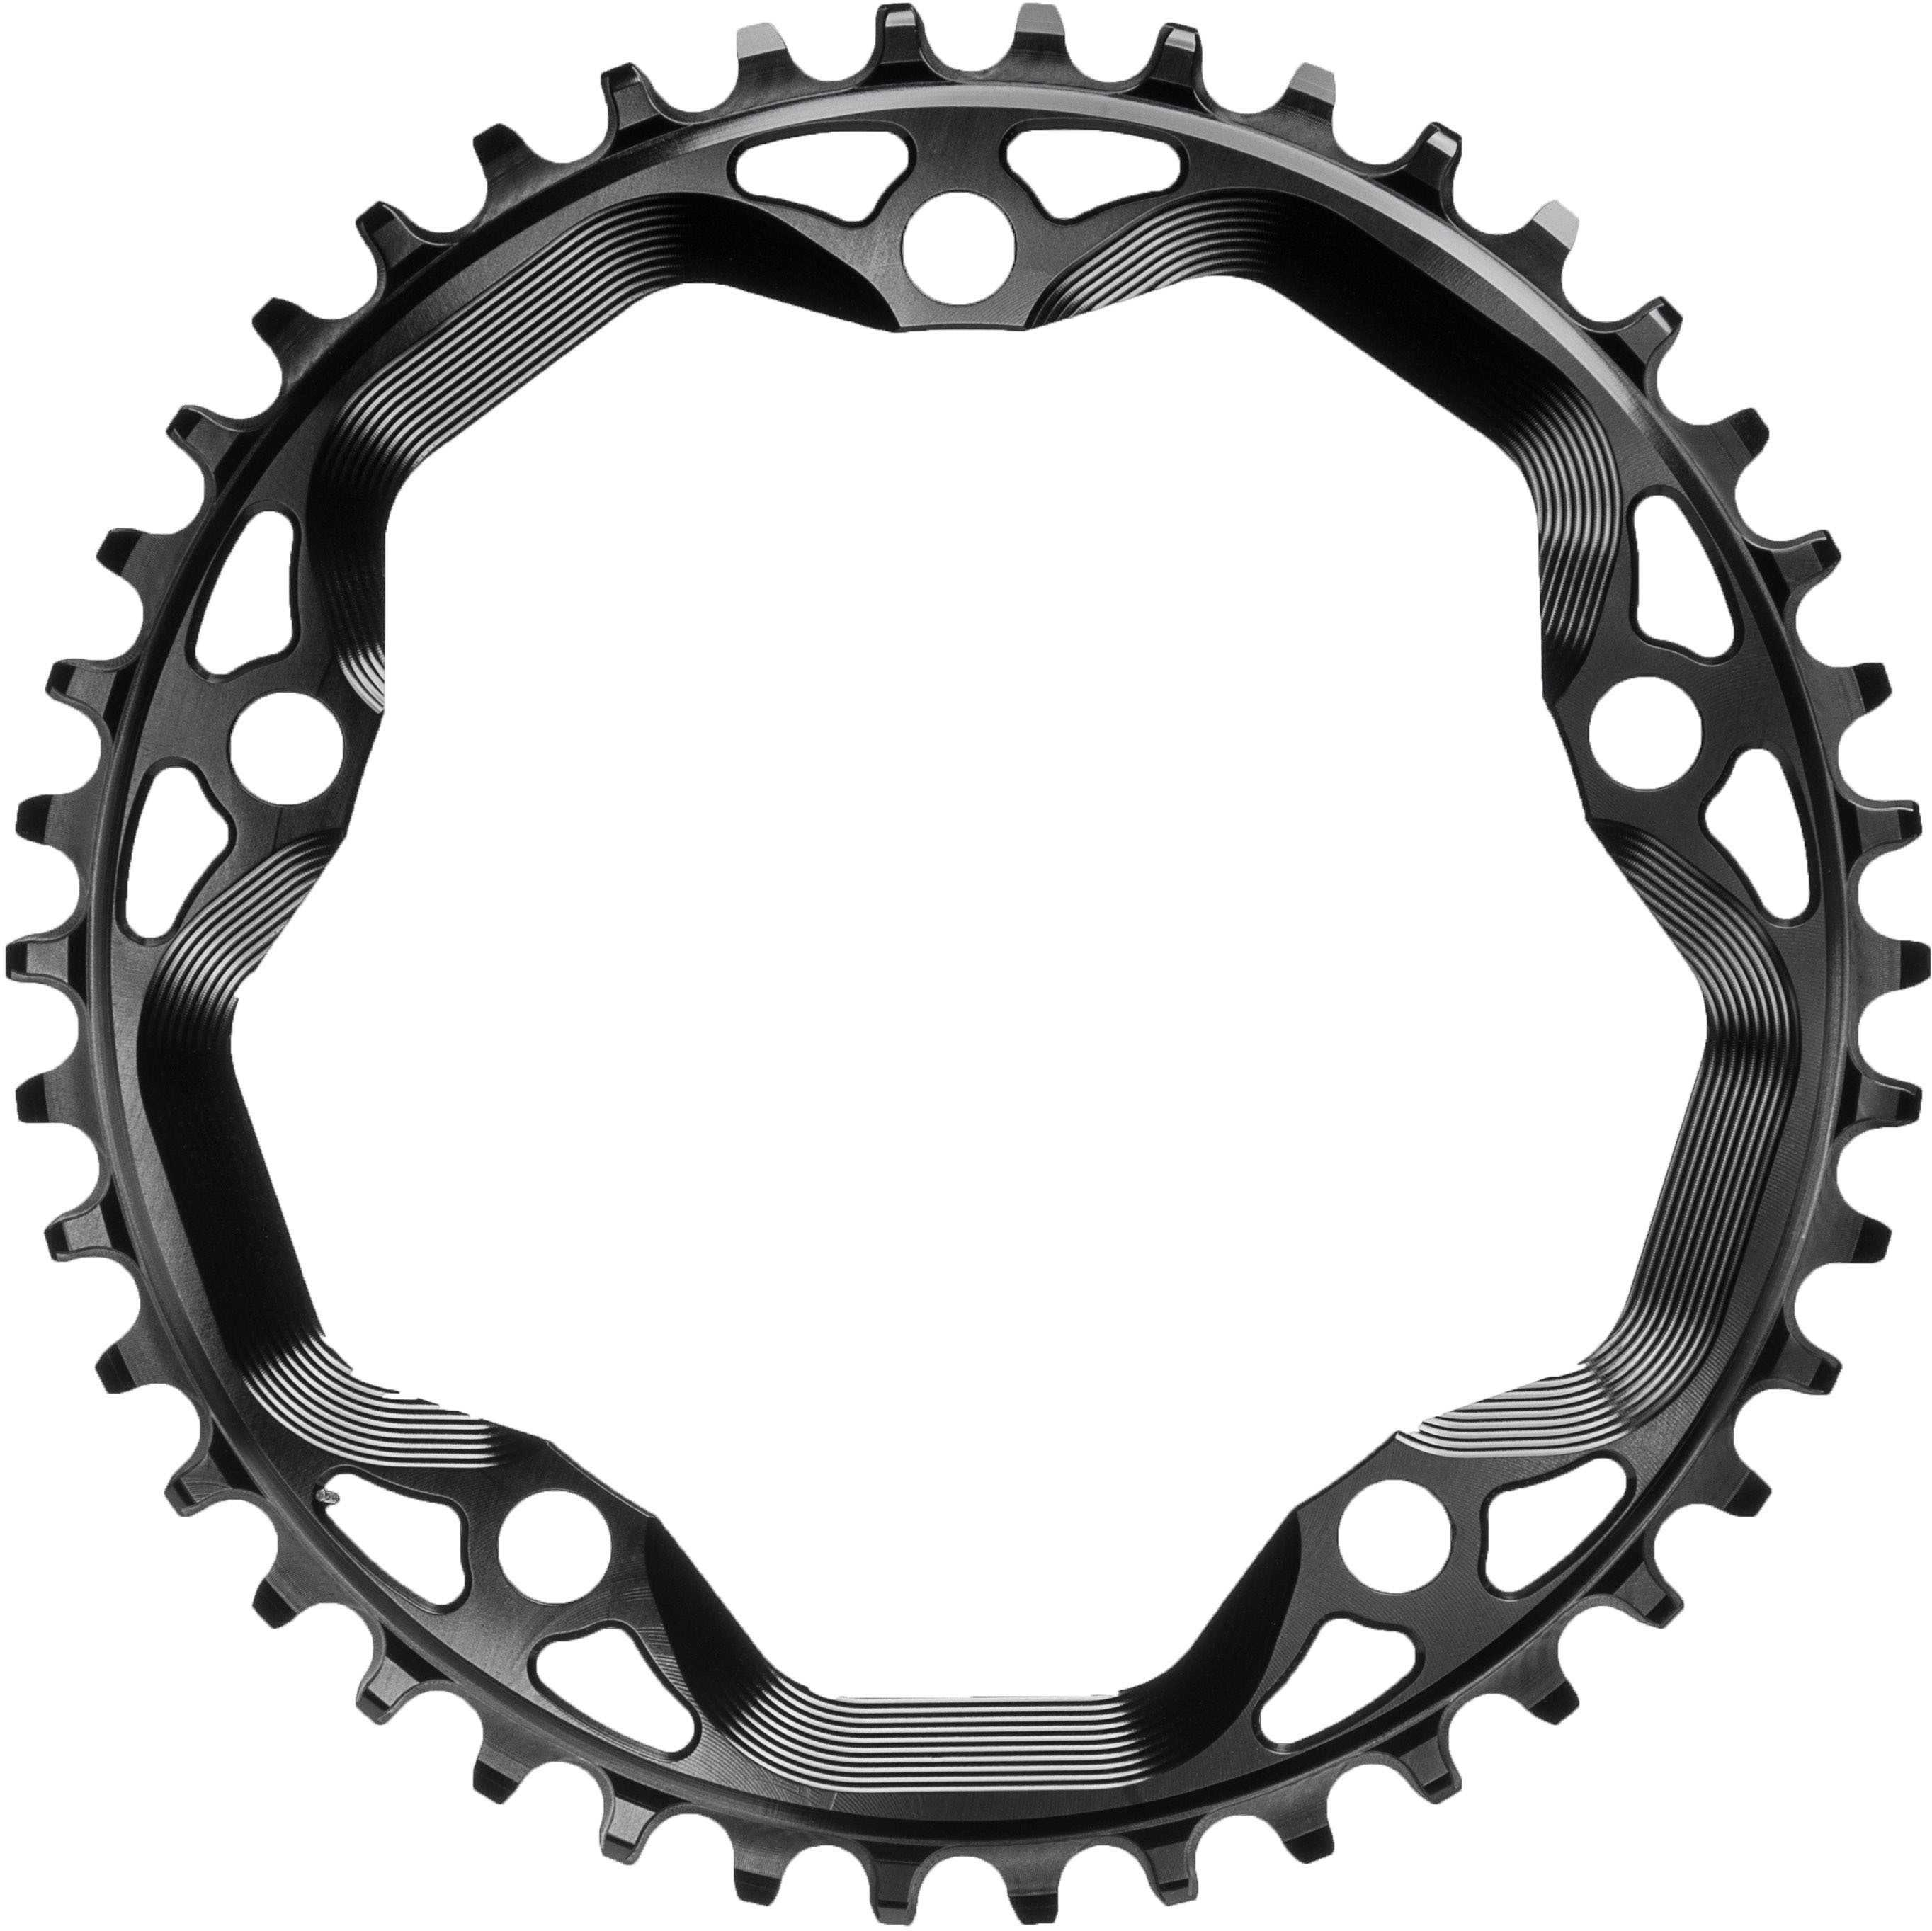 FRONT KLINGE ABSOLUTEBLACK CX 1X ROUND NARROW-WIDE 110 BCD 38T SORT | chainrings_component